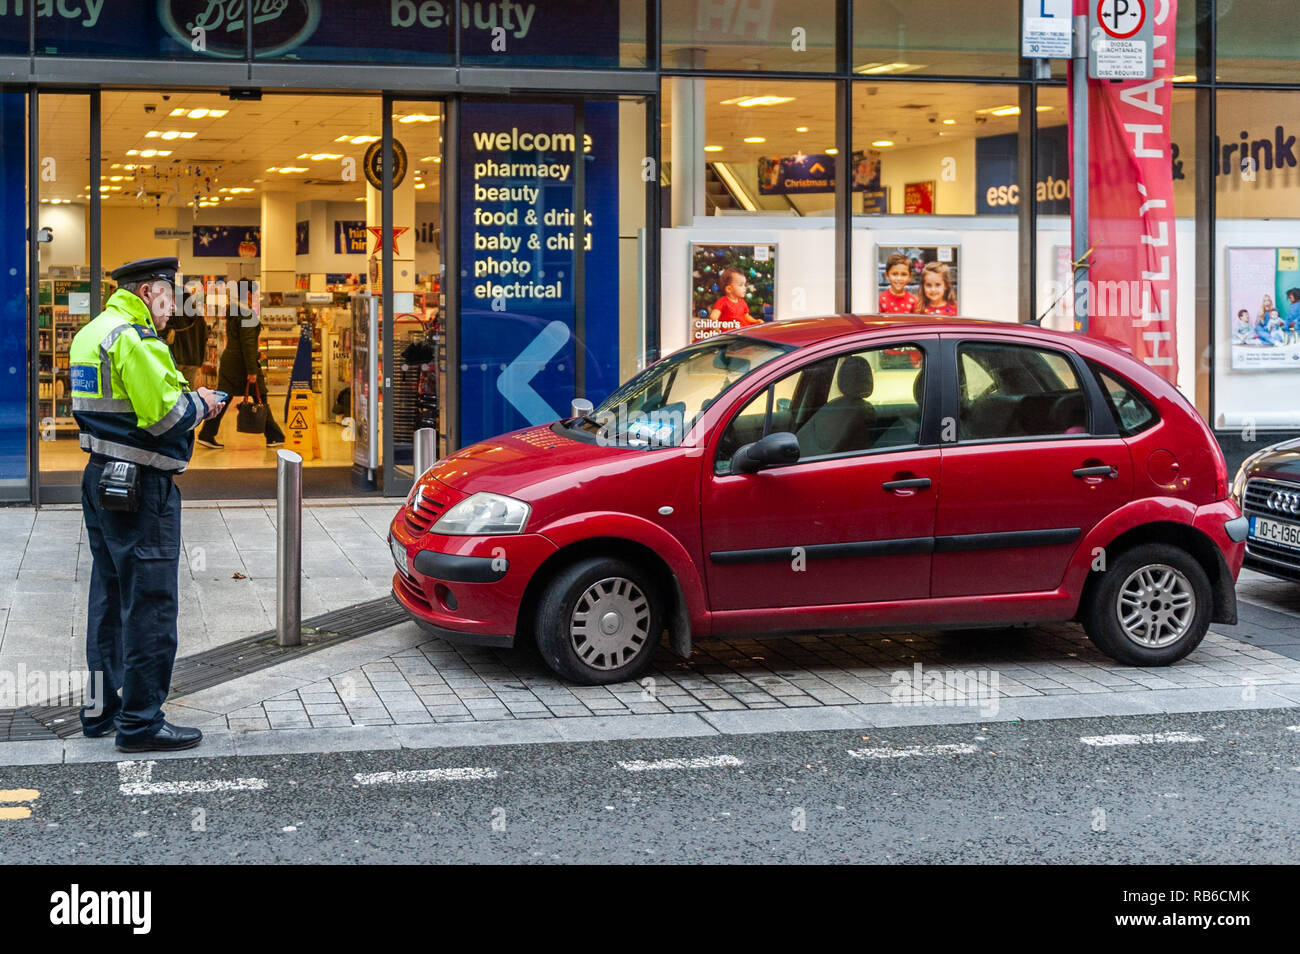 Traffic Warden/Parking Enforcer issues a ticket to an illegally parked car in Cork City, Ireland. - Stock Image